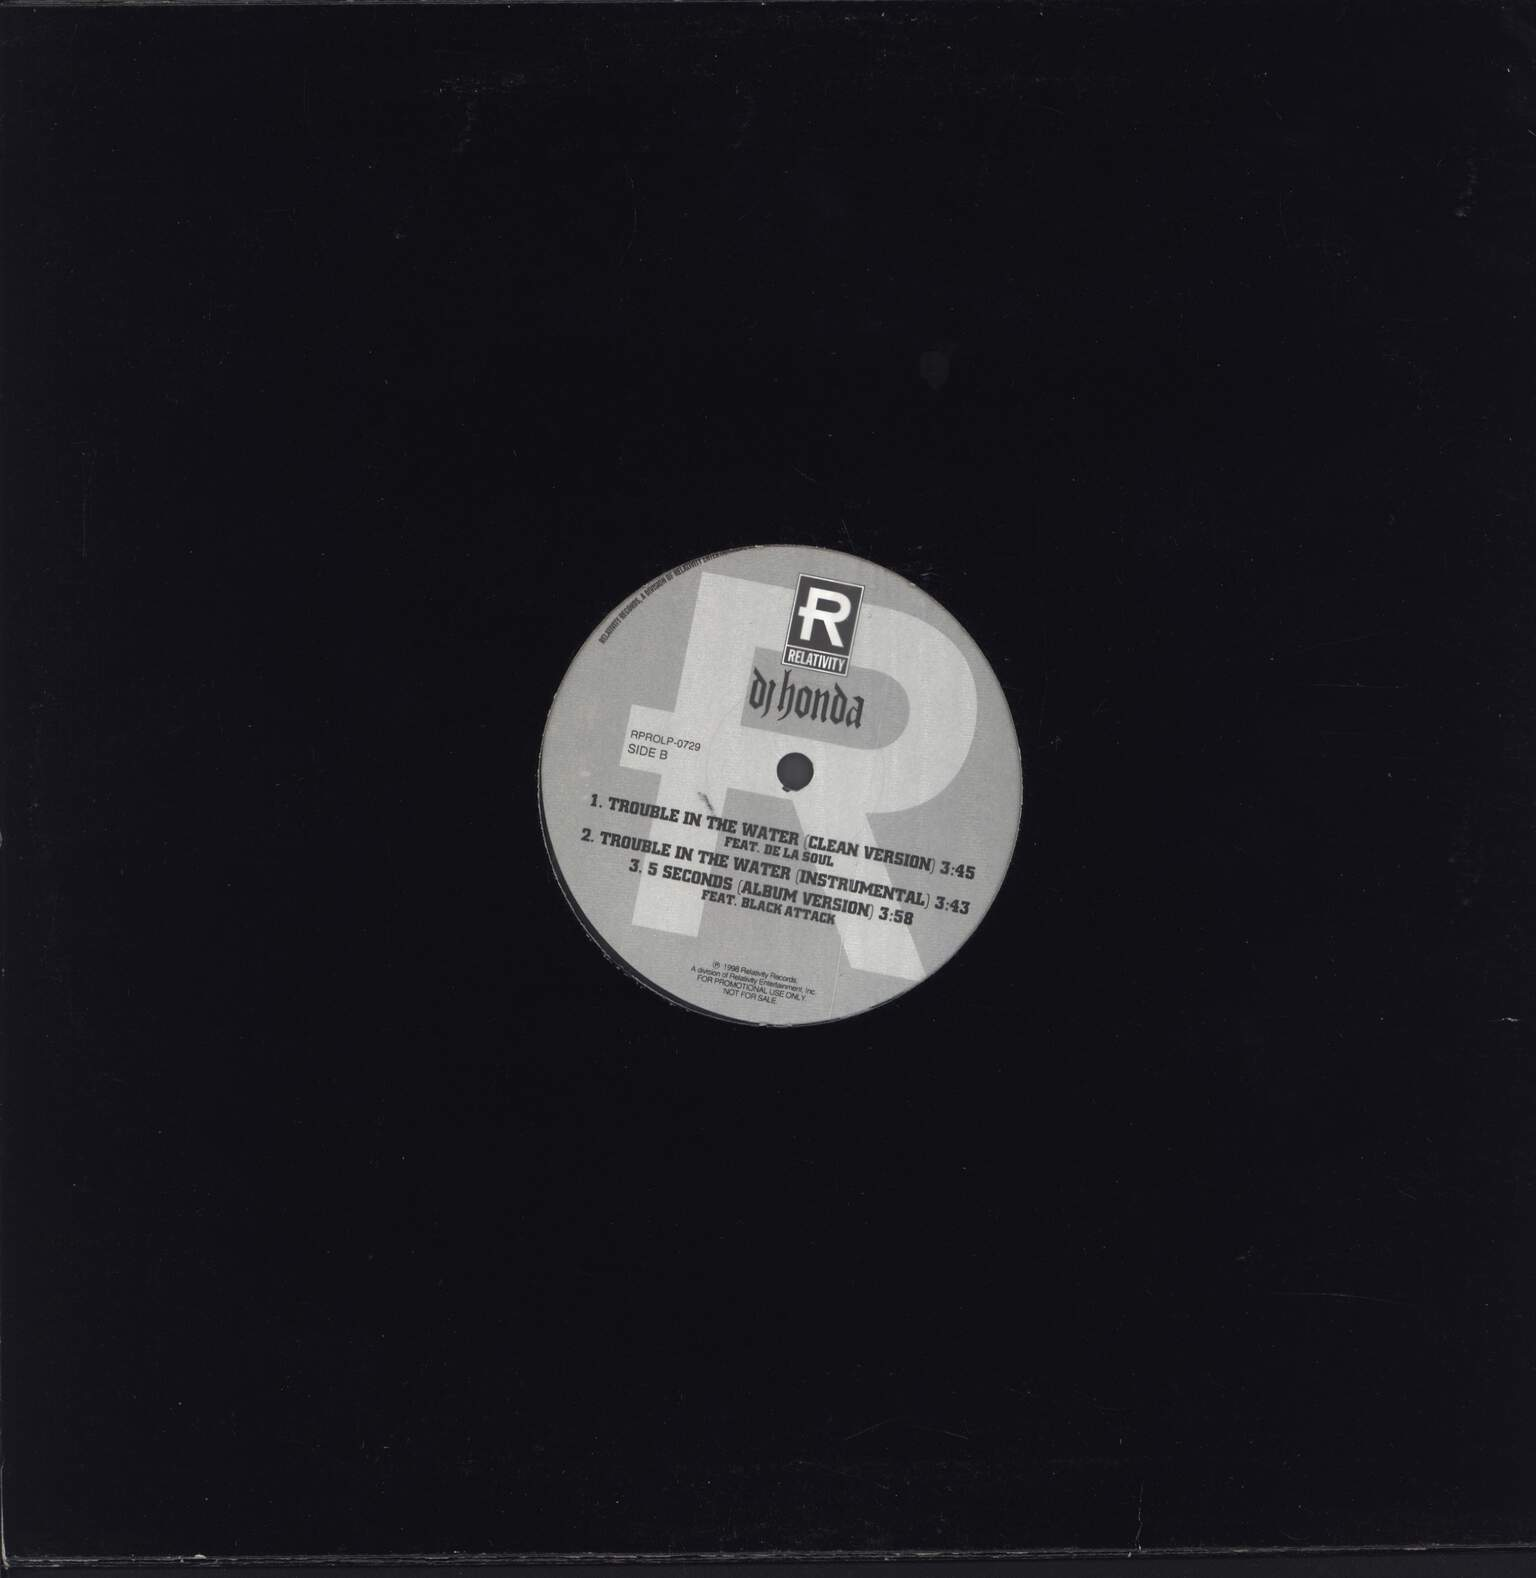 "DJ Honda: On The Mic, 12"" Maxi Single (Vinyl)"